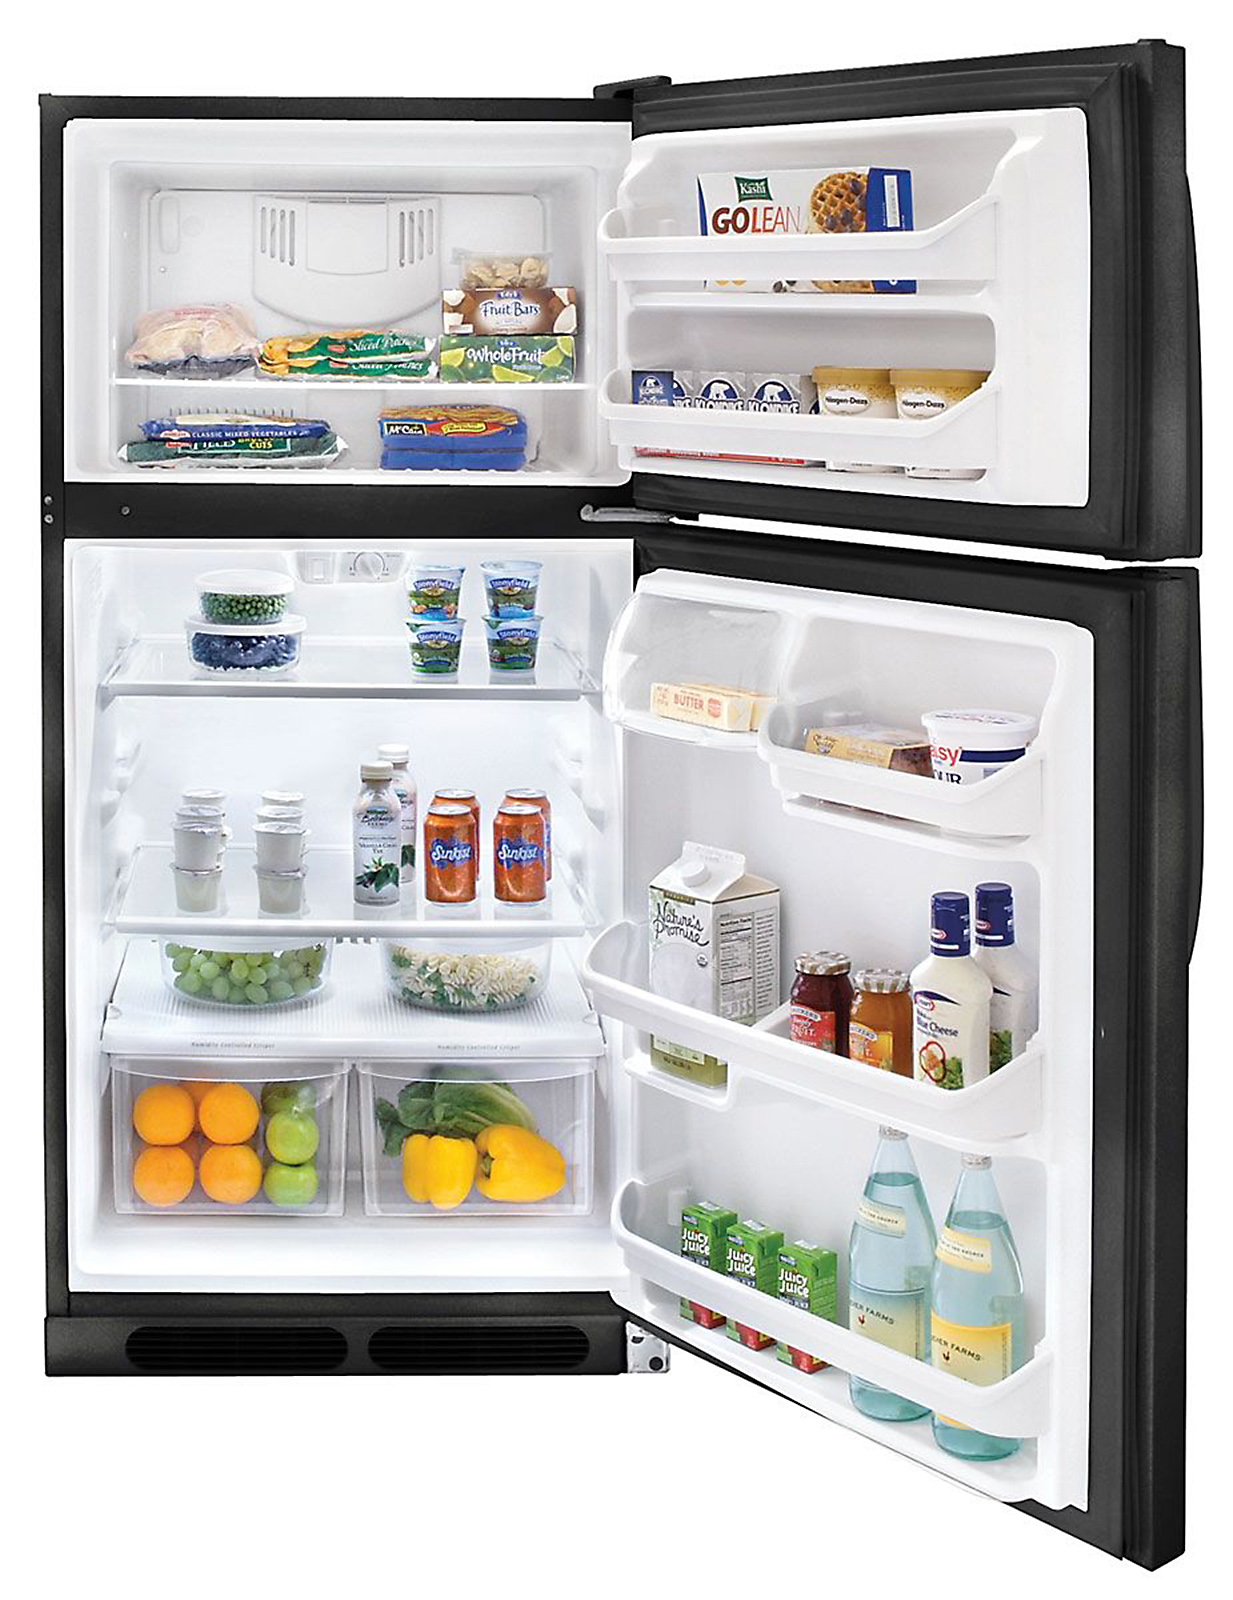 Kenmore 14.8 cu. ft. Top-Freezer Refrigerator - Black